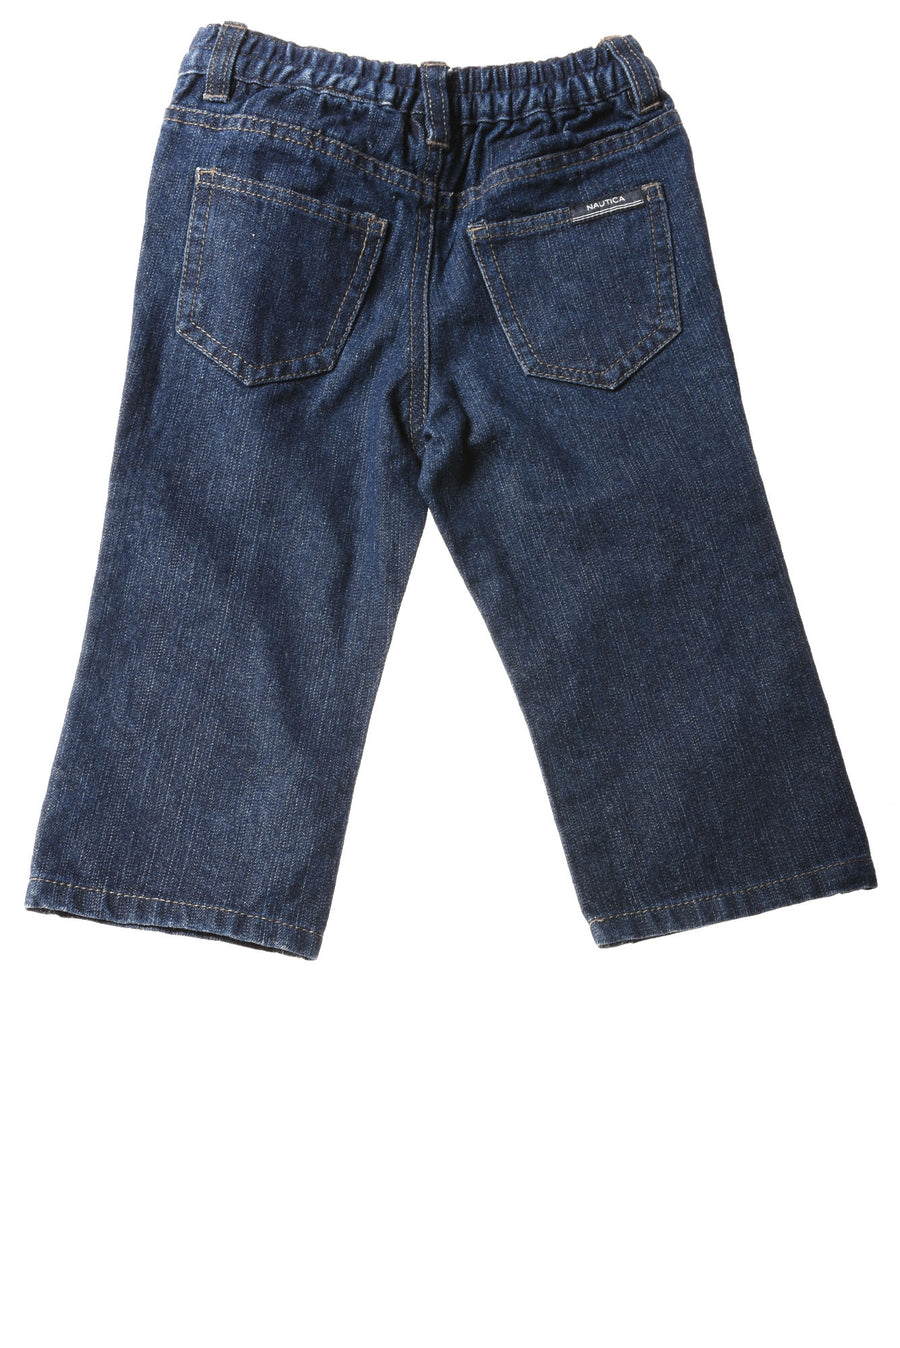 USED Nautica Baby Boy's Jeans 18 Months Blue